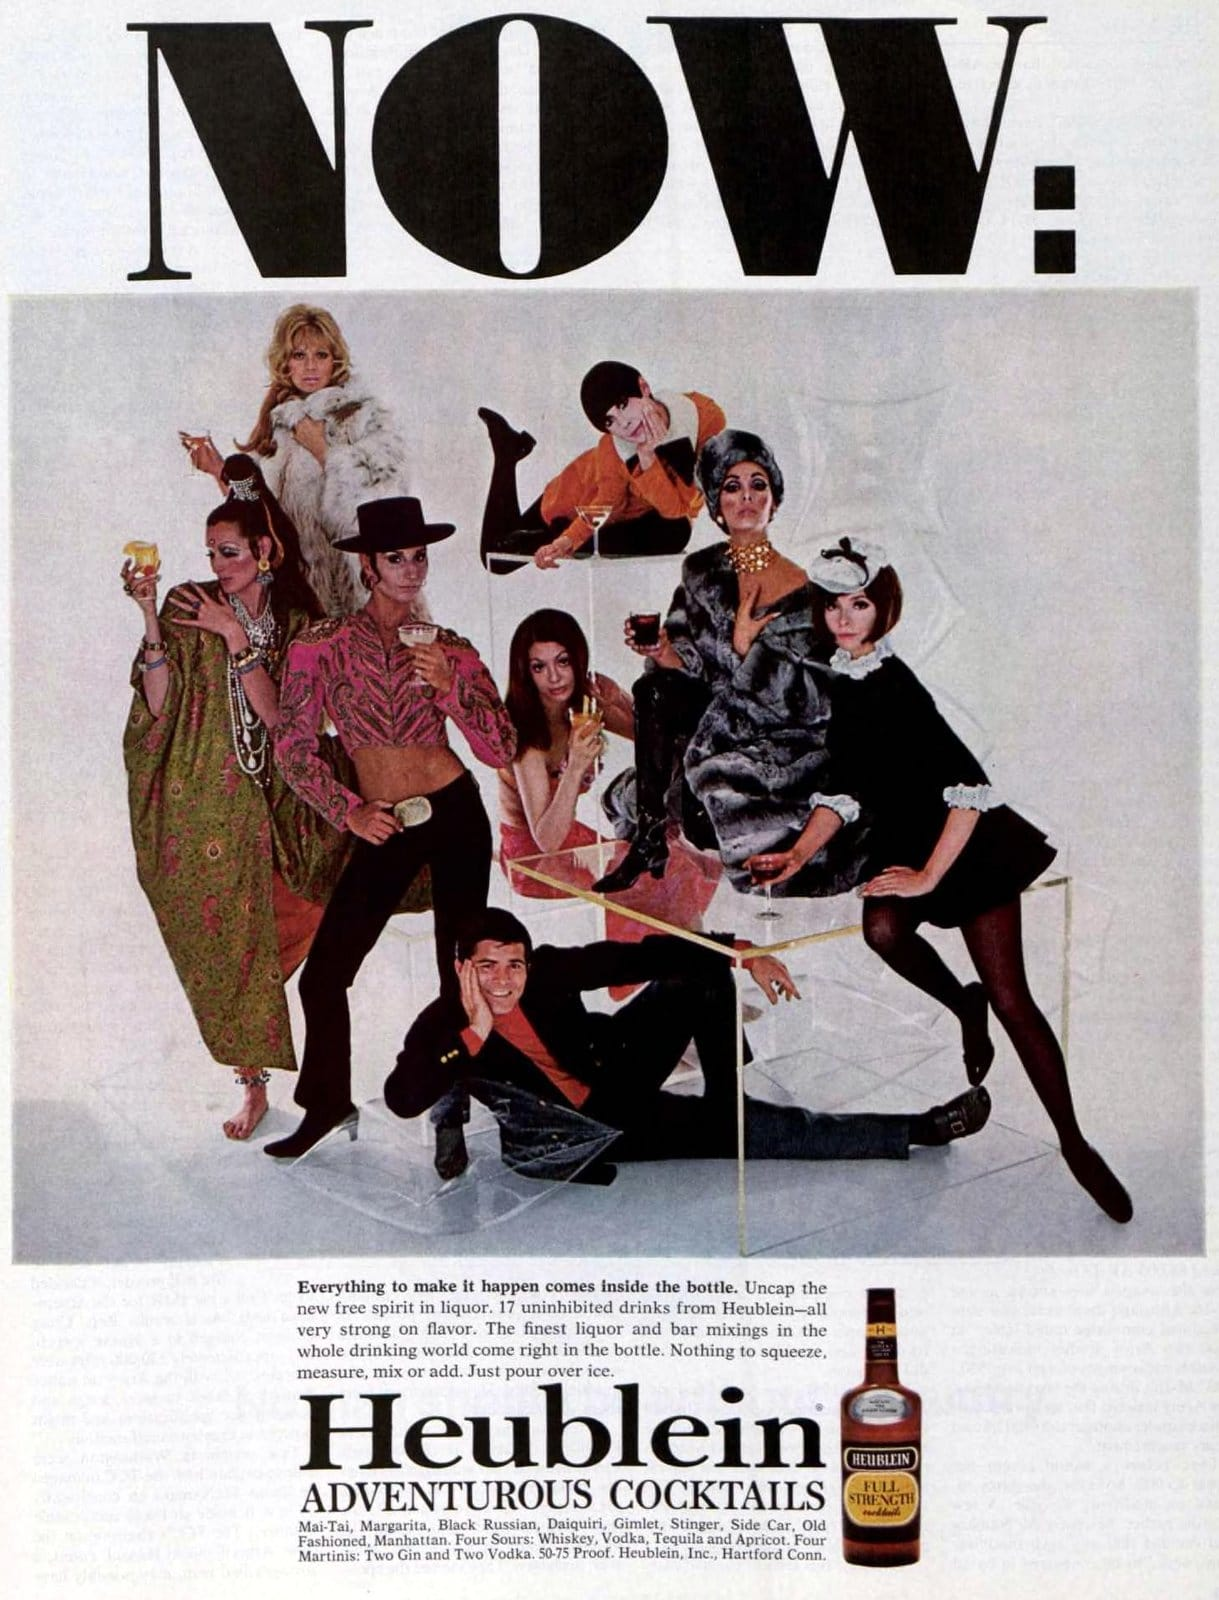 Heublein adventurous retro ready-made cocktail mixes (1968)